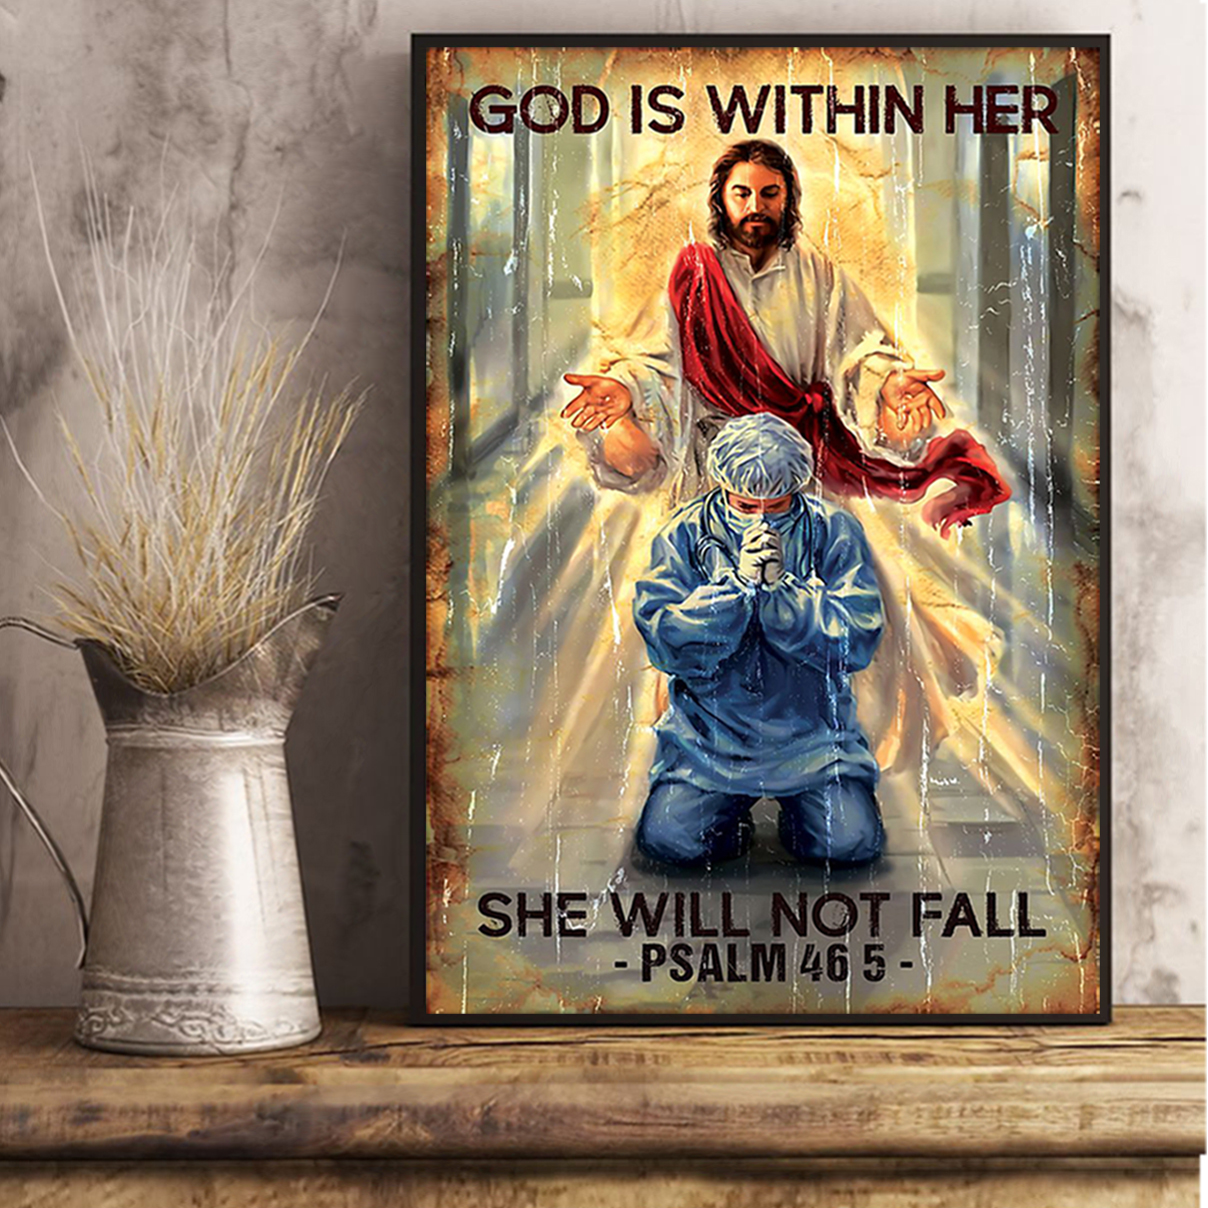 God is within her she will not fall poster A2